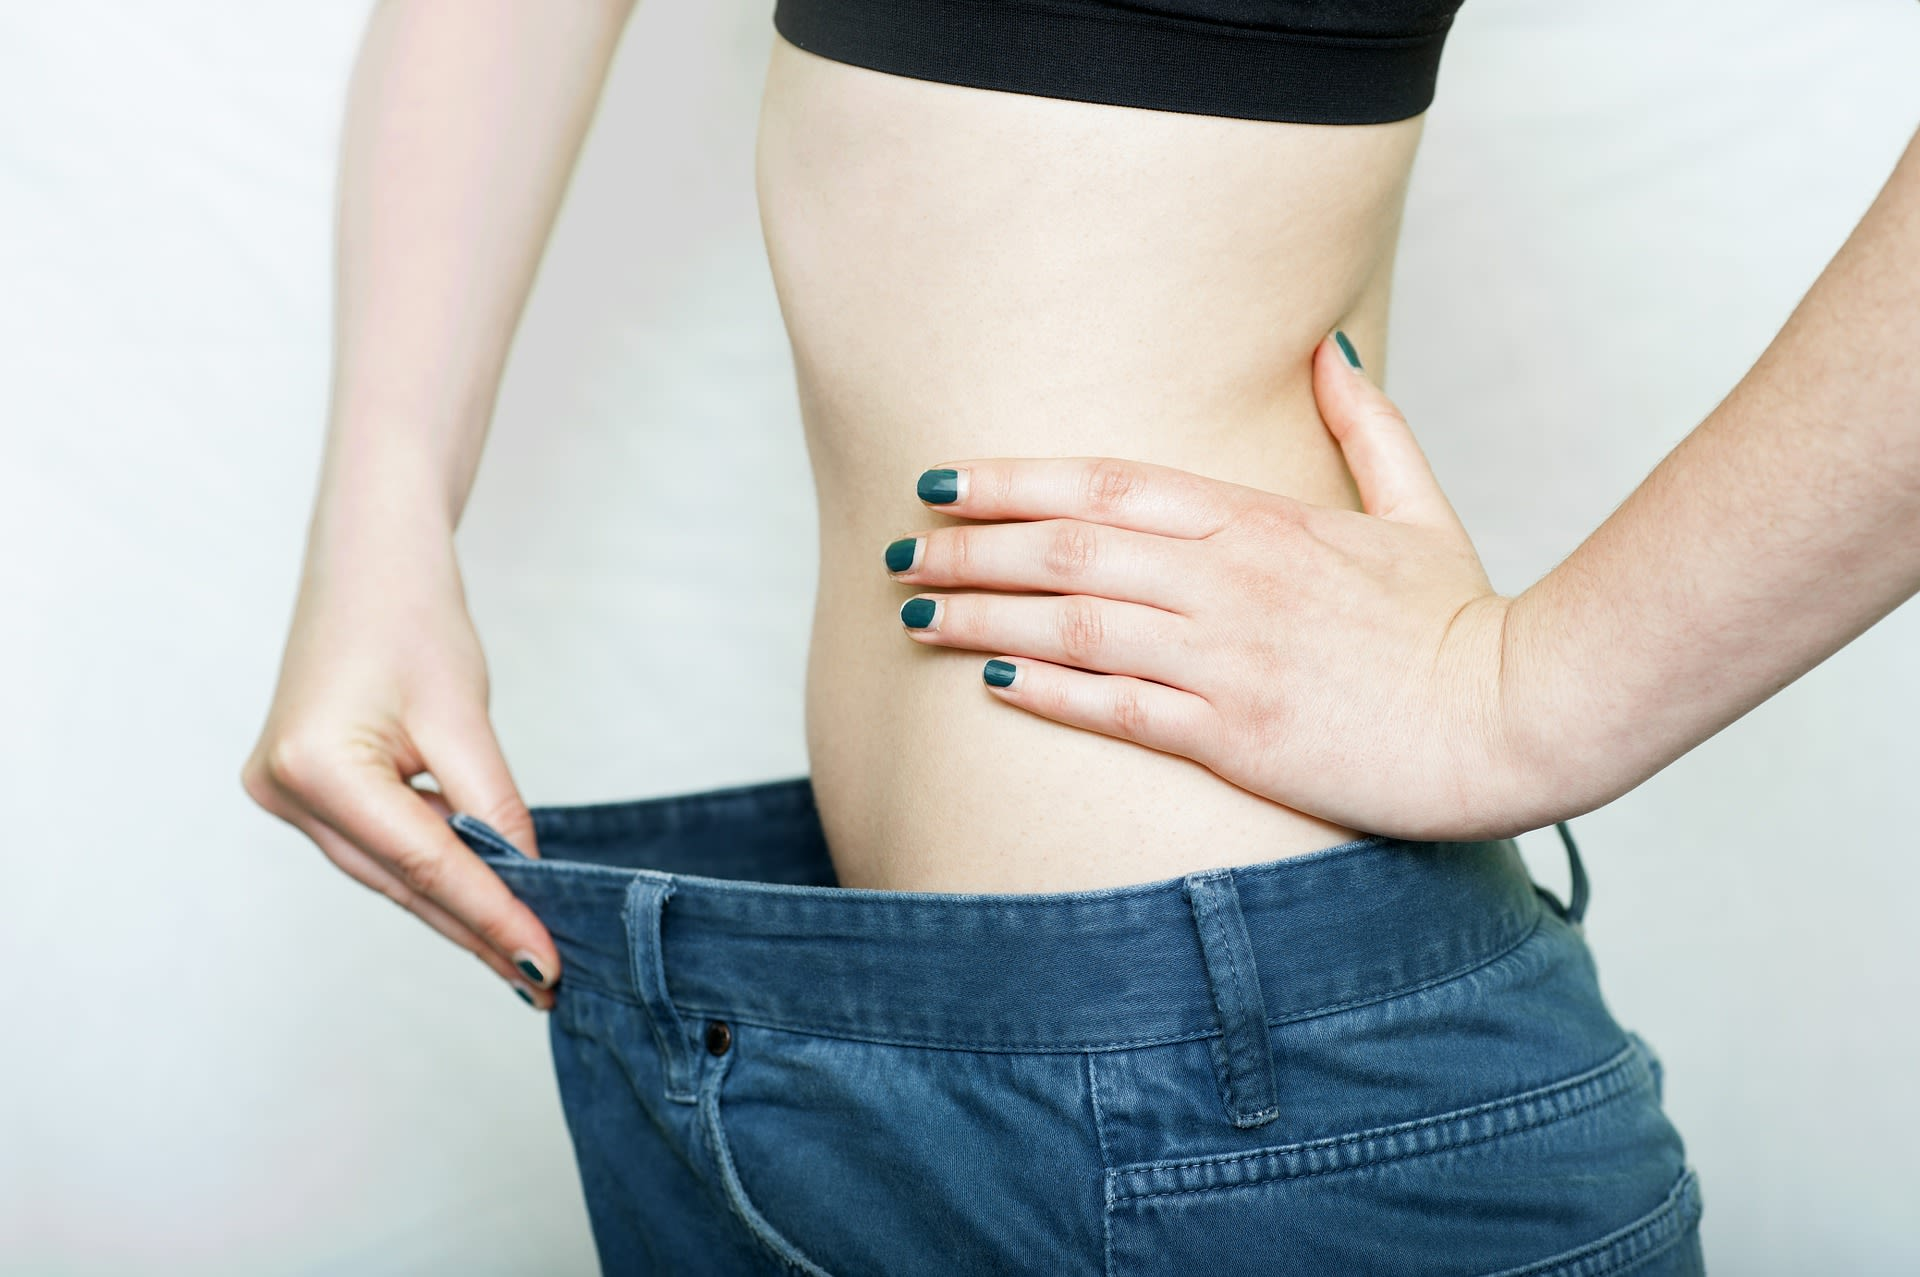 Weight Loss - There are No Quick Fixes 2